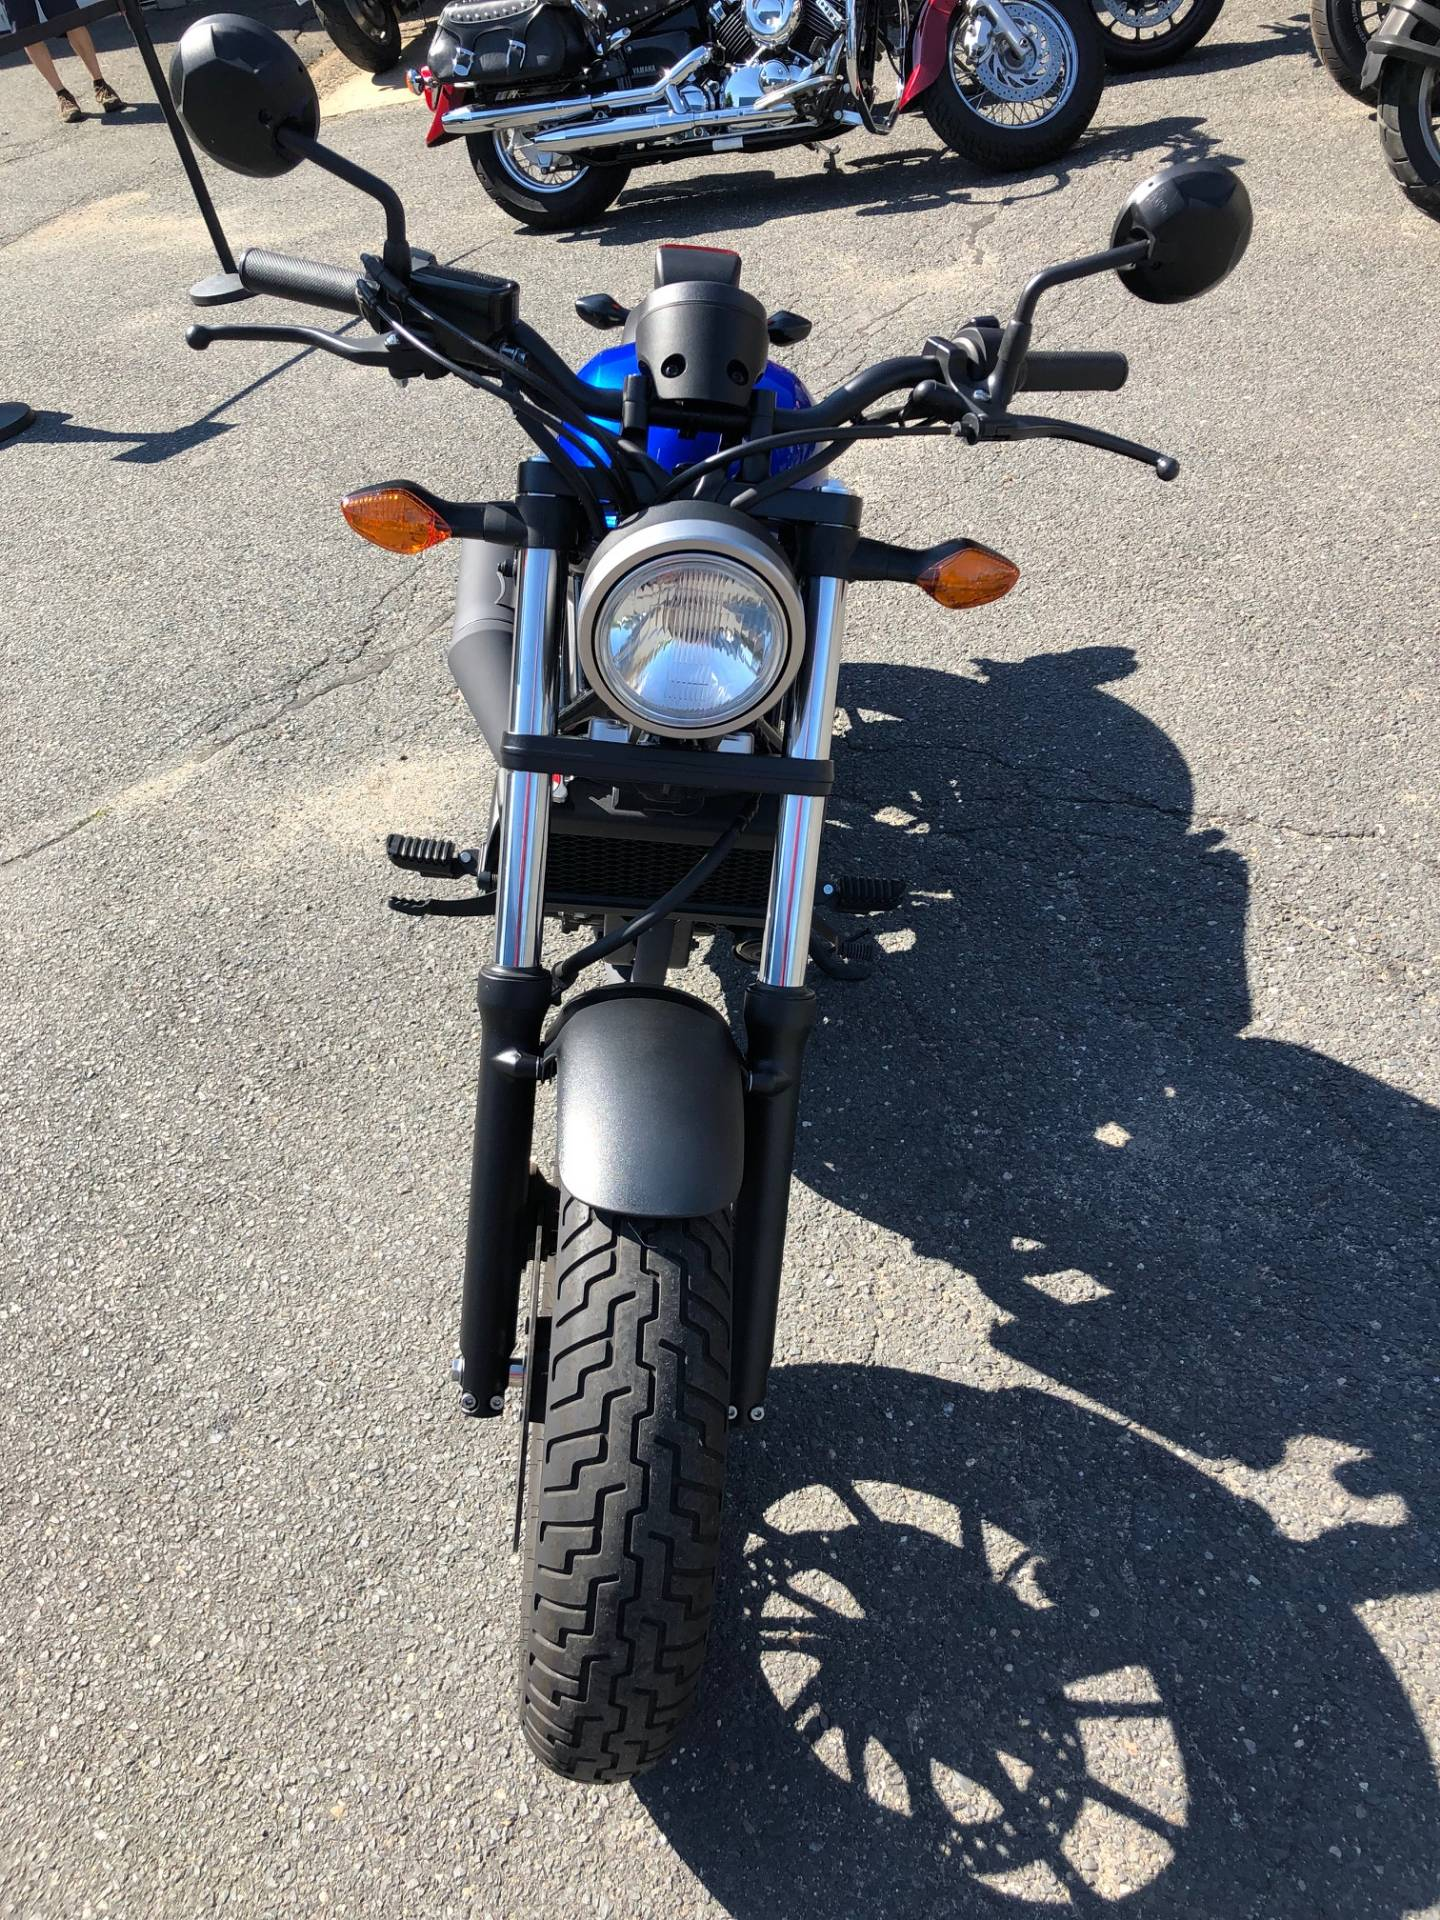 2018 Honda Rebel 300 in Northampton, Massachusetts - Photo 3